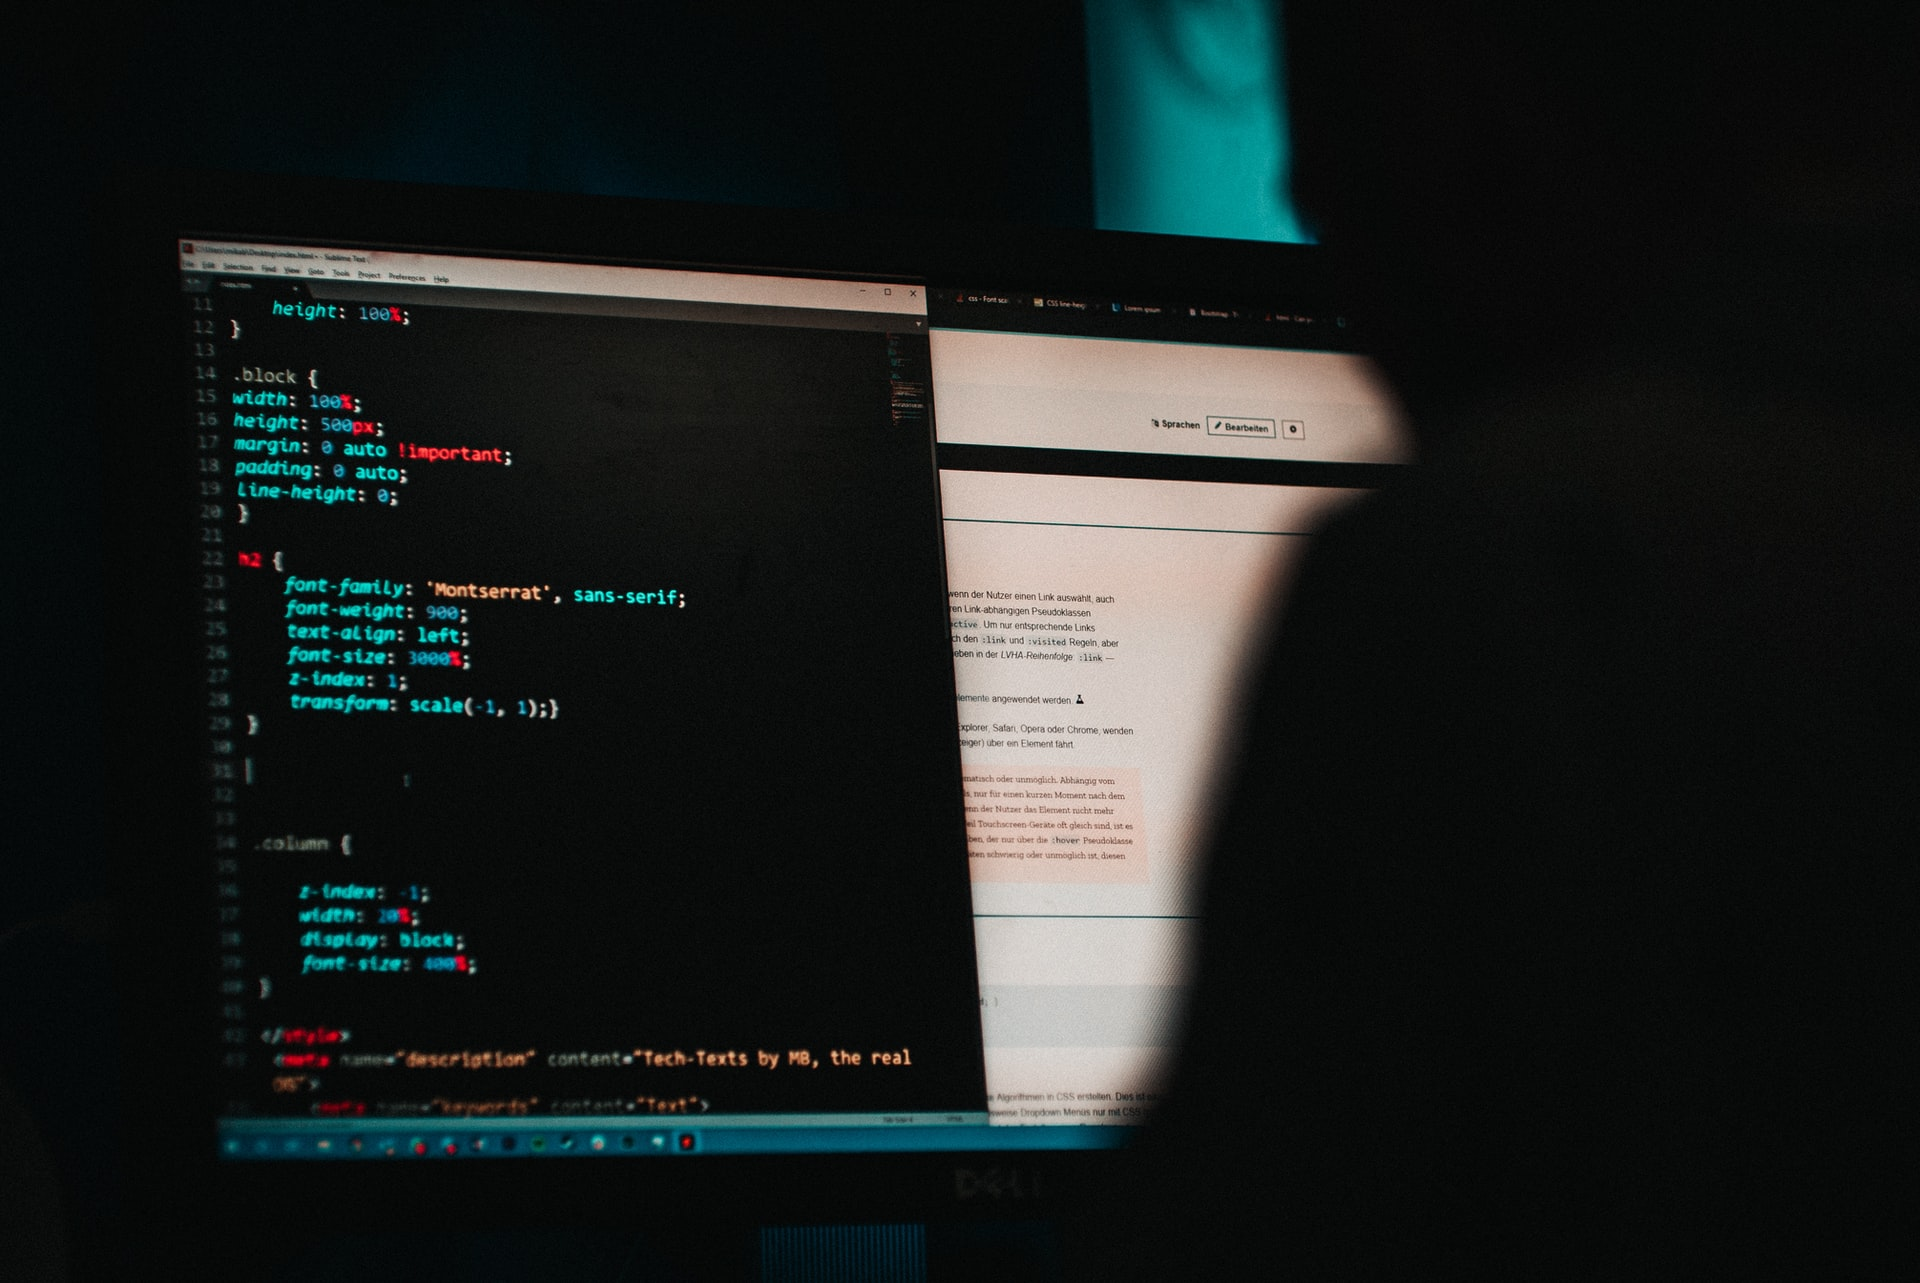 Web Application Pentesting and Ethical Hacking